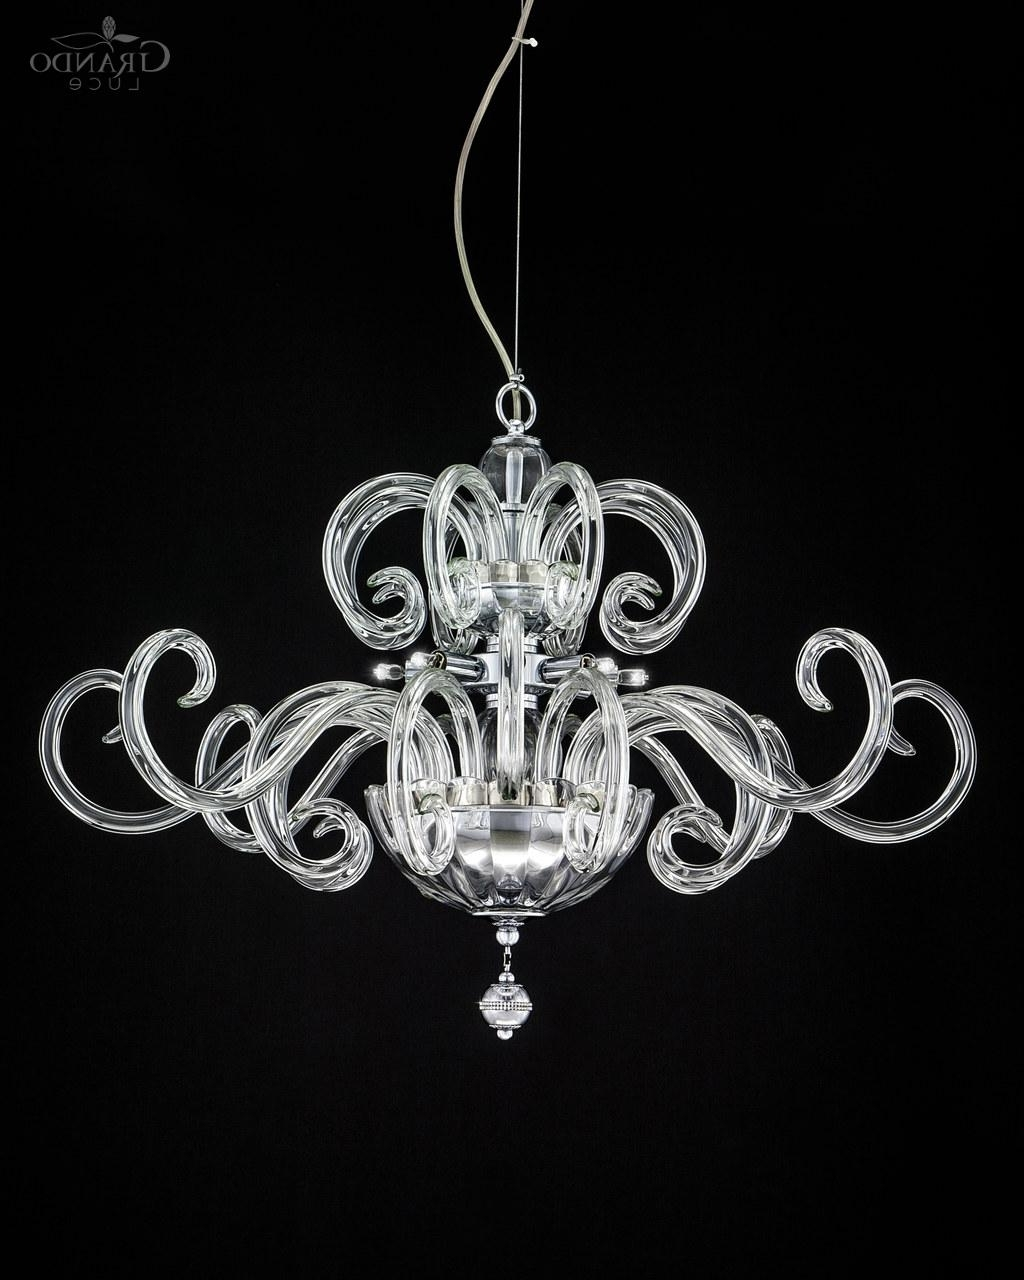 Newest 119/sm Chrome Modern Crystal Chandelier With Swarovski Elements Inside Chrome And Crystal Chandelier (View 15 of 20)